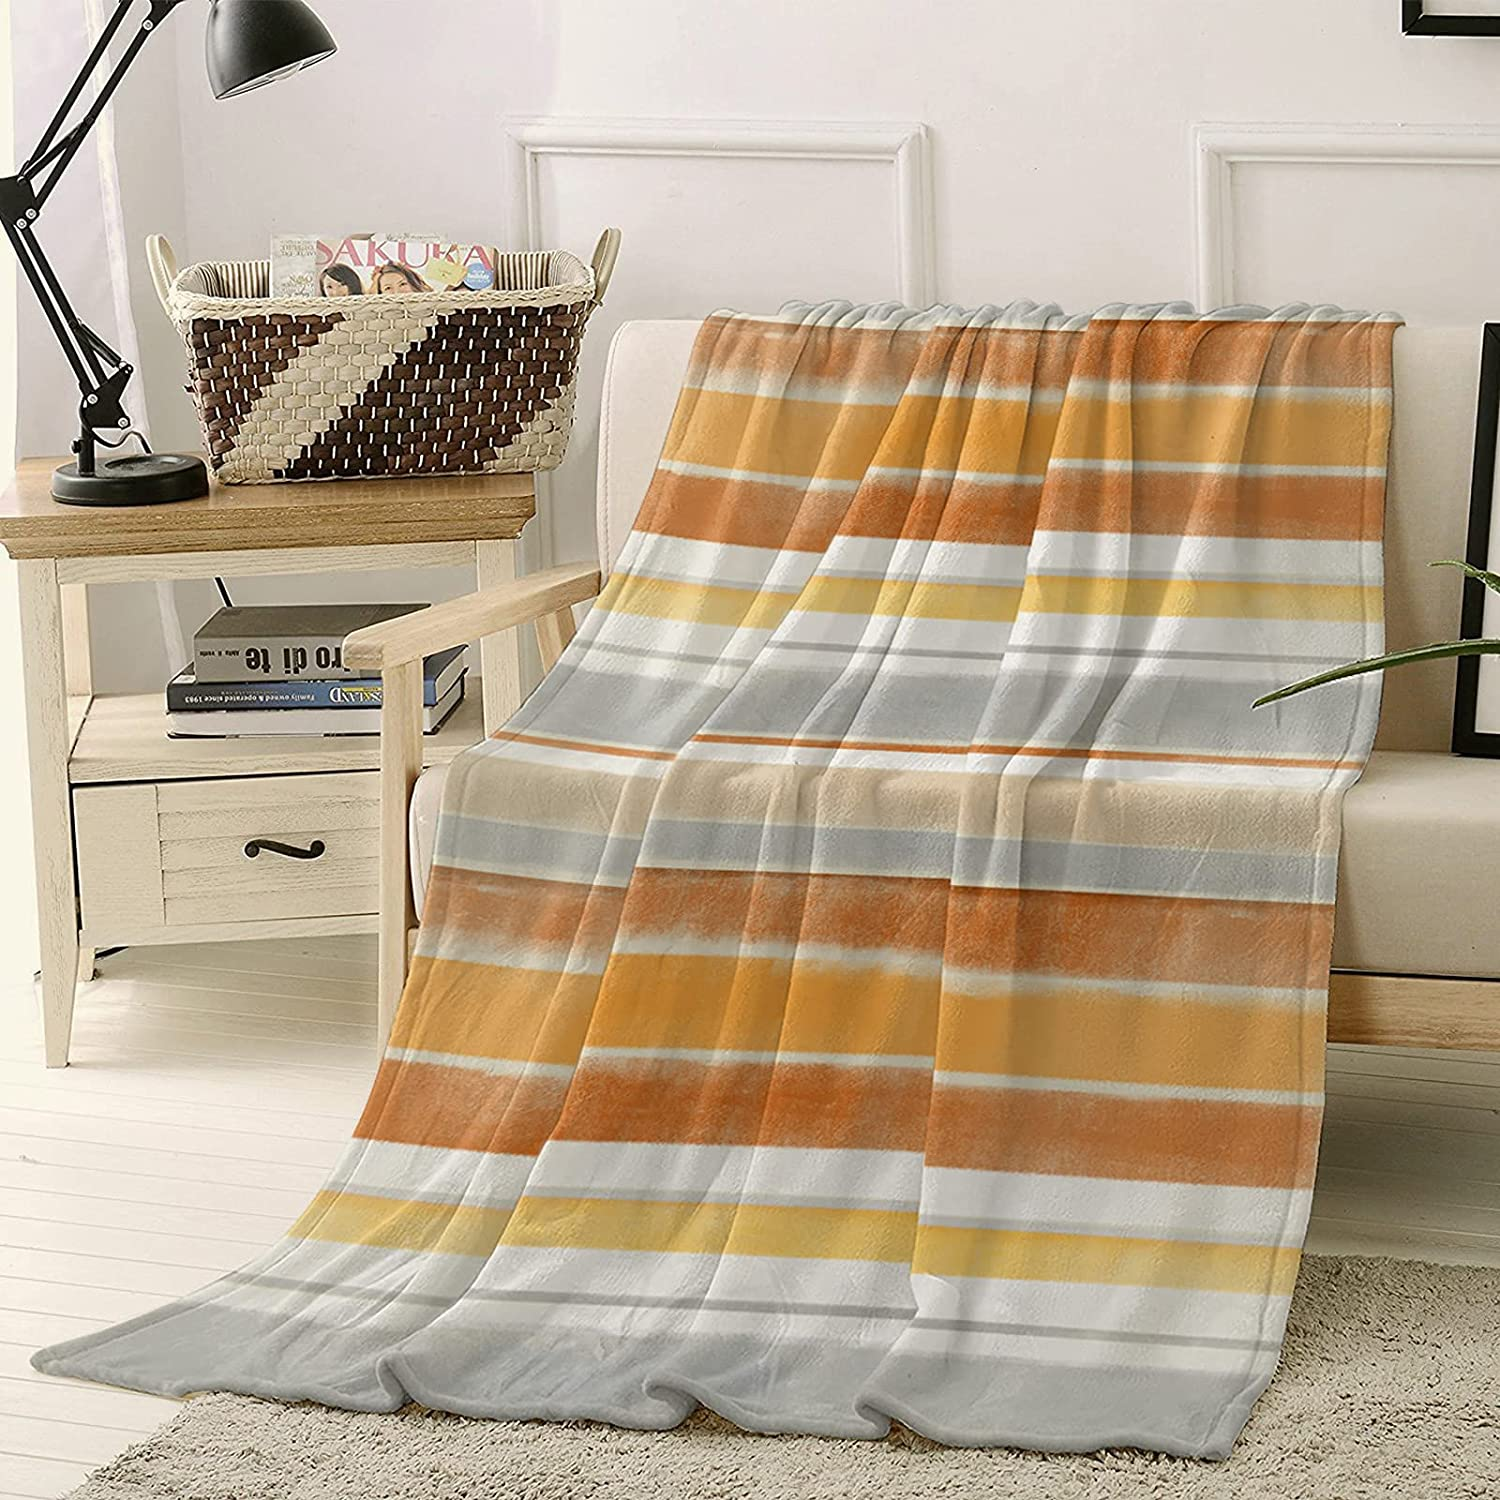 Fuzzy safety Throw Blanket Nordic Style 40 shipfree 60 Blanke Fleece inch Bed x